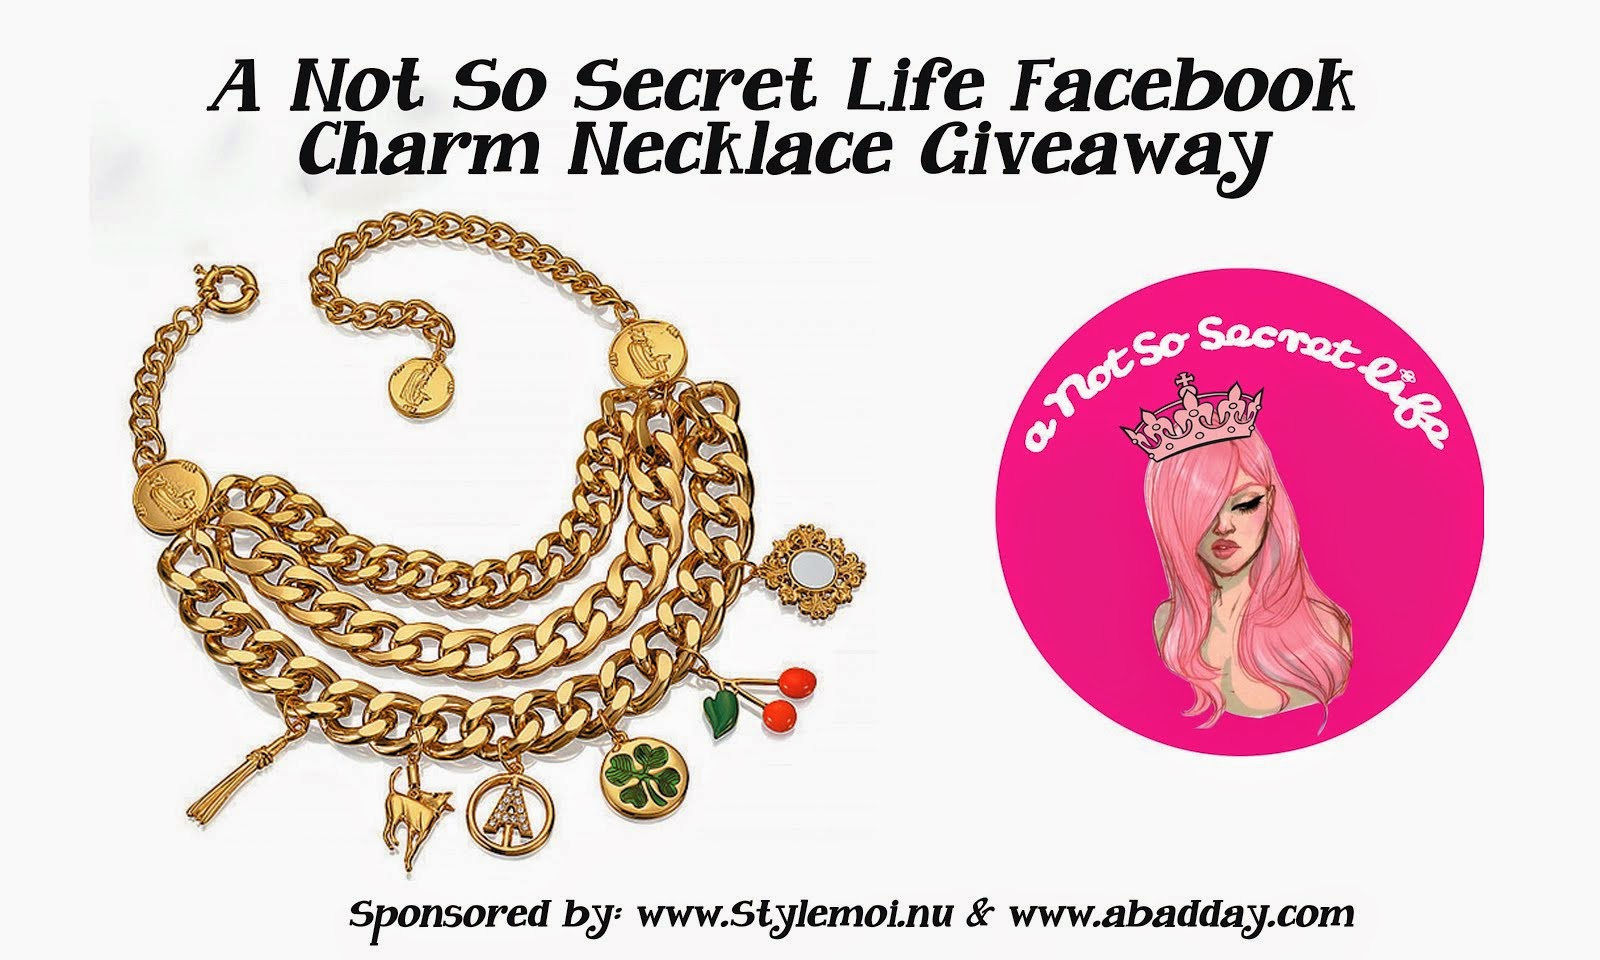 WIN THIS CHARM NECKLACE